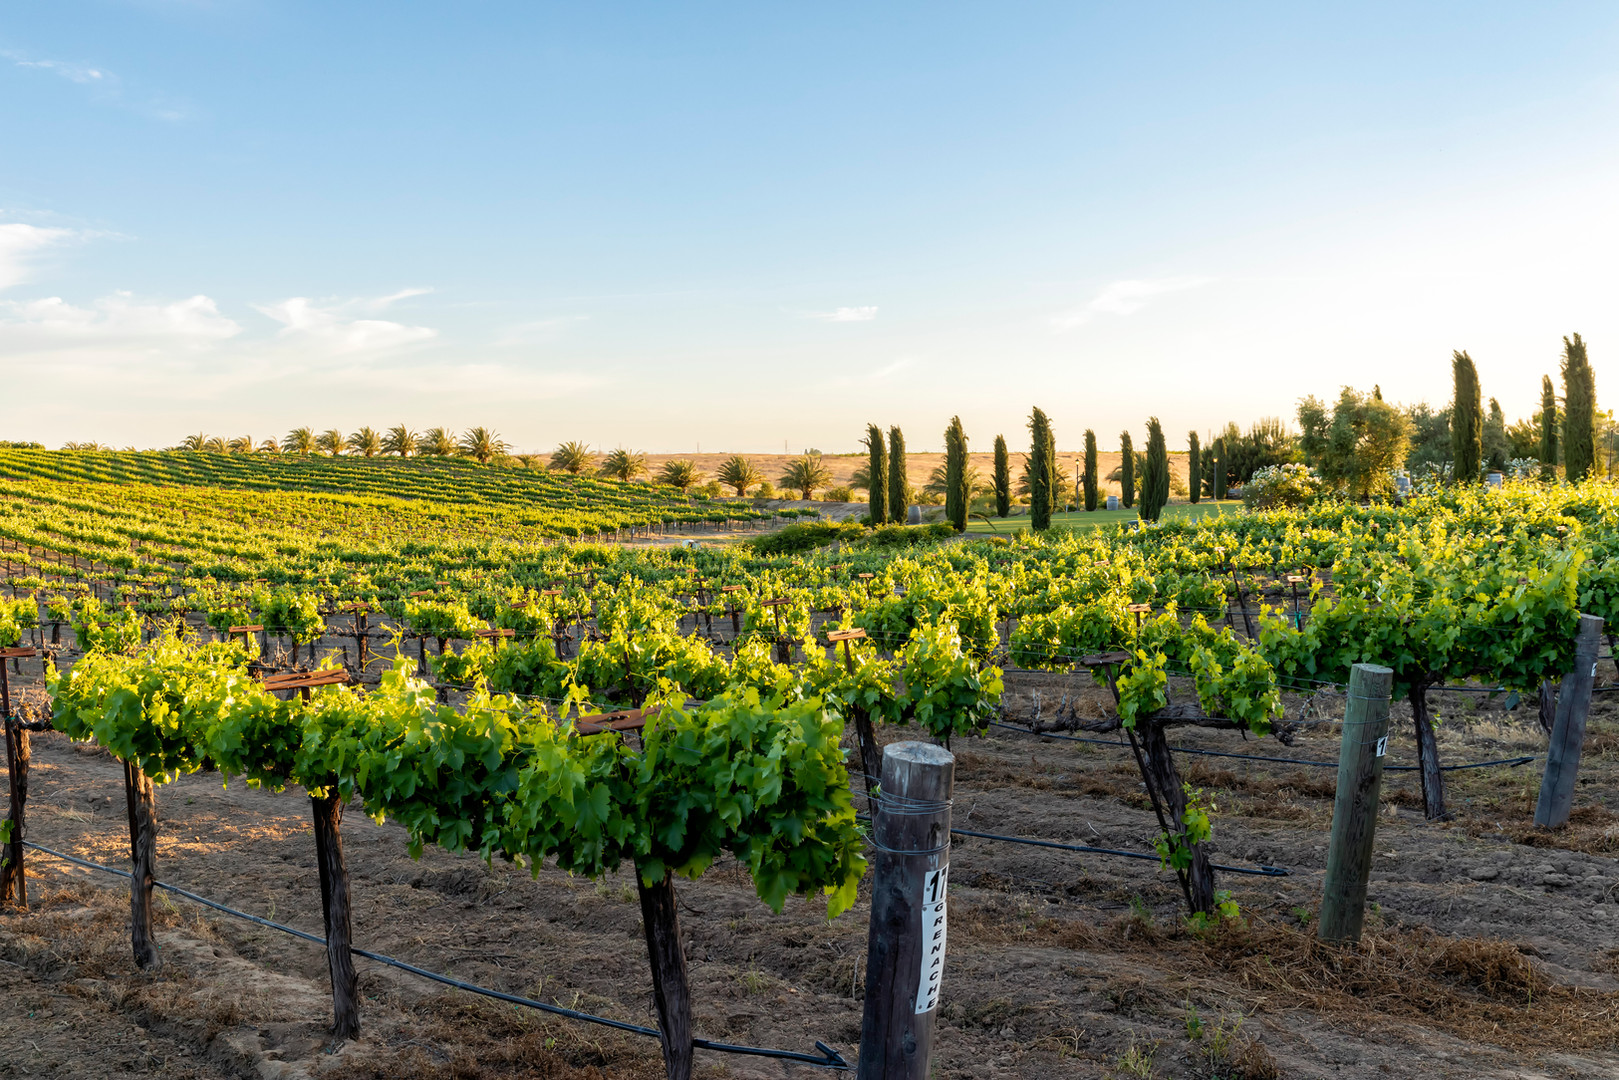 Toca Madera Winery photo by Stephan Alvin Photography